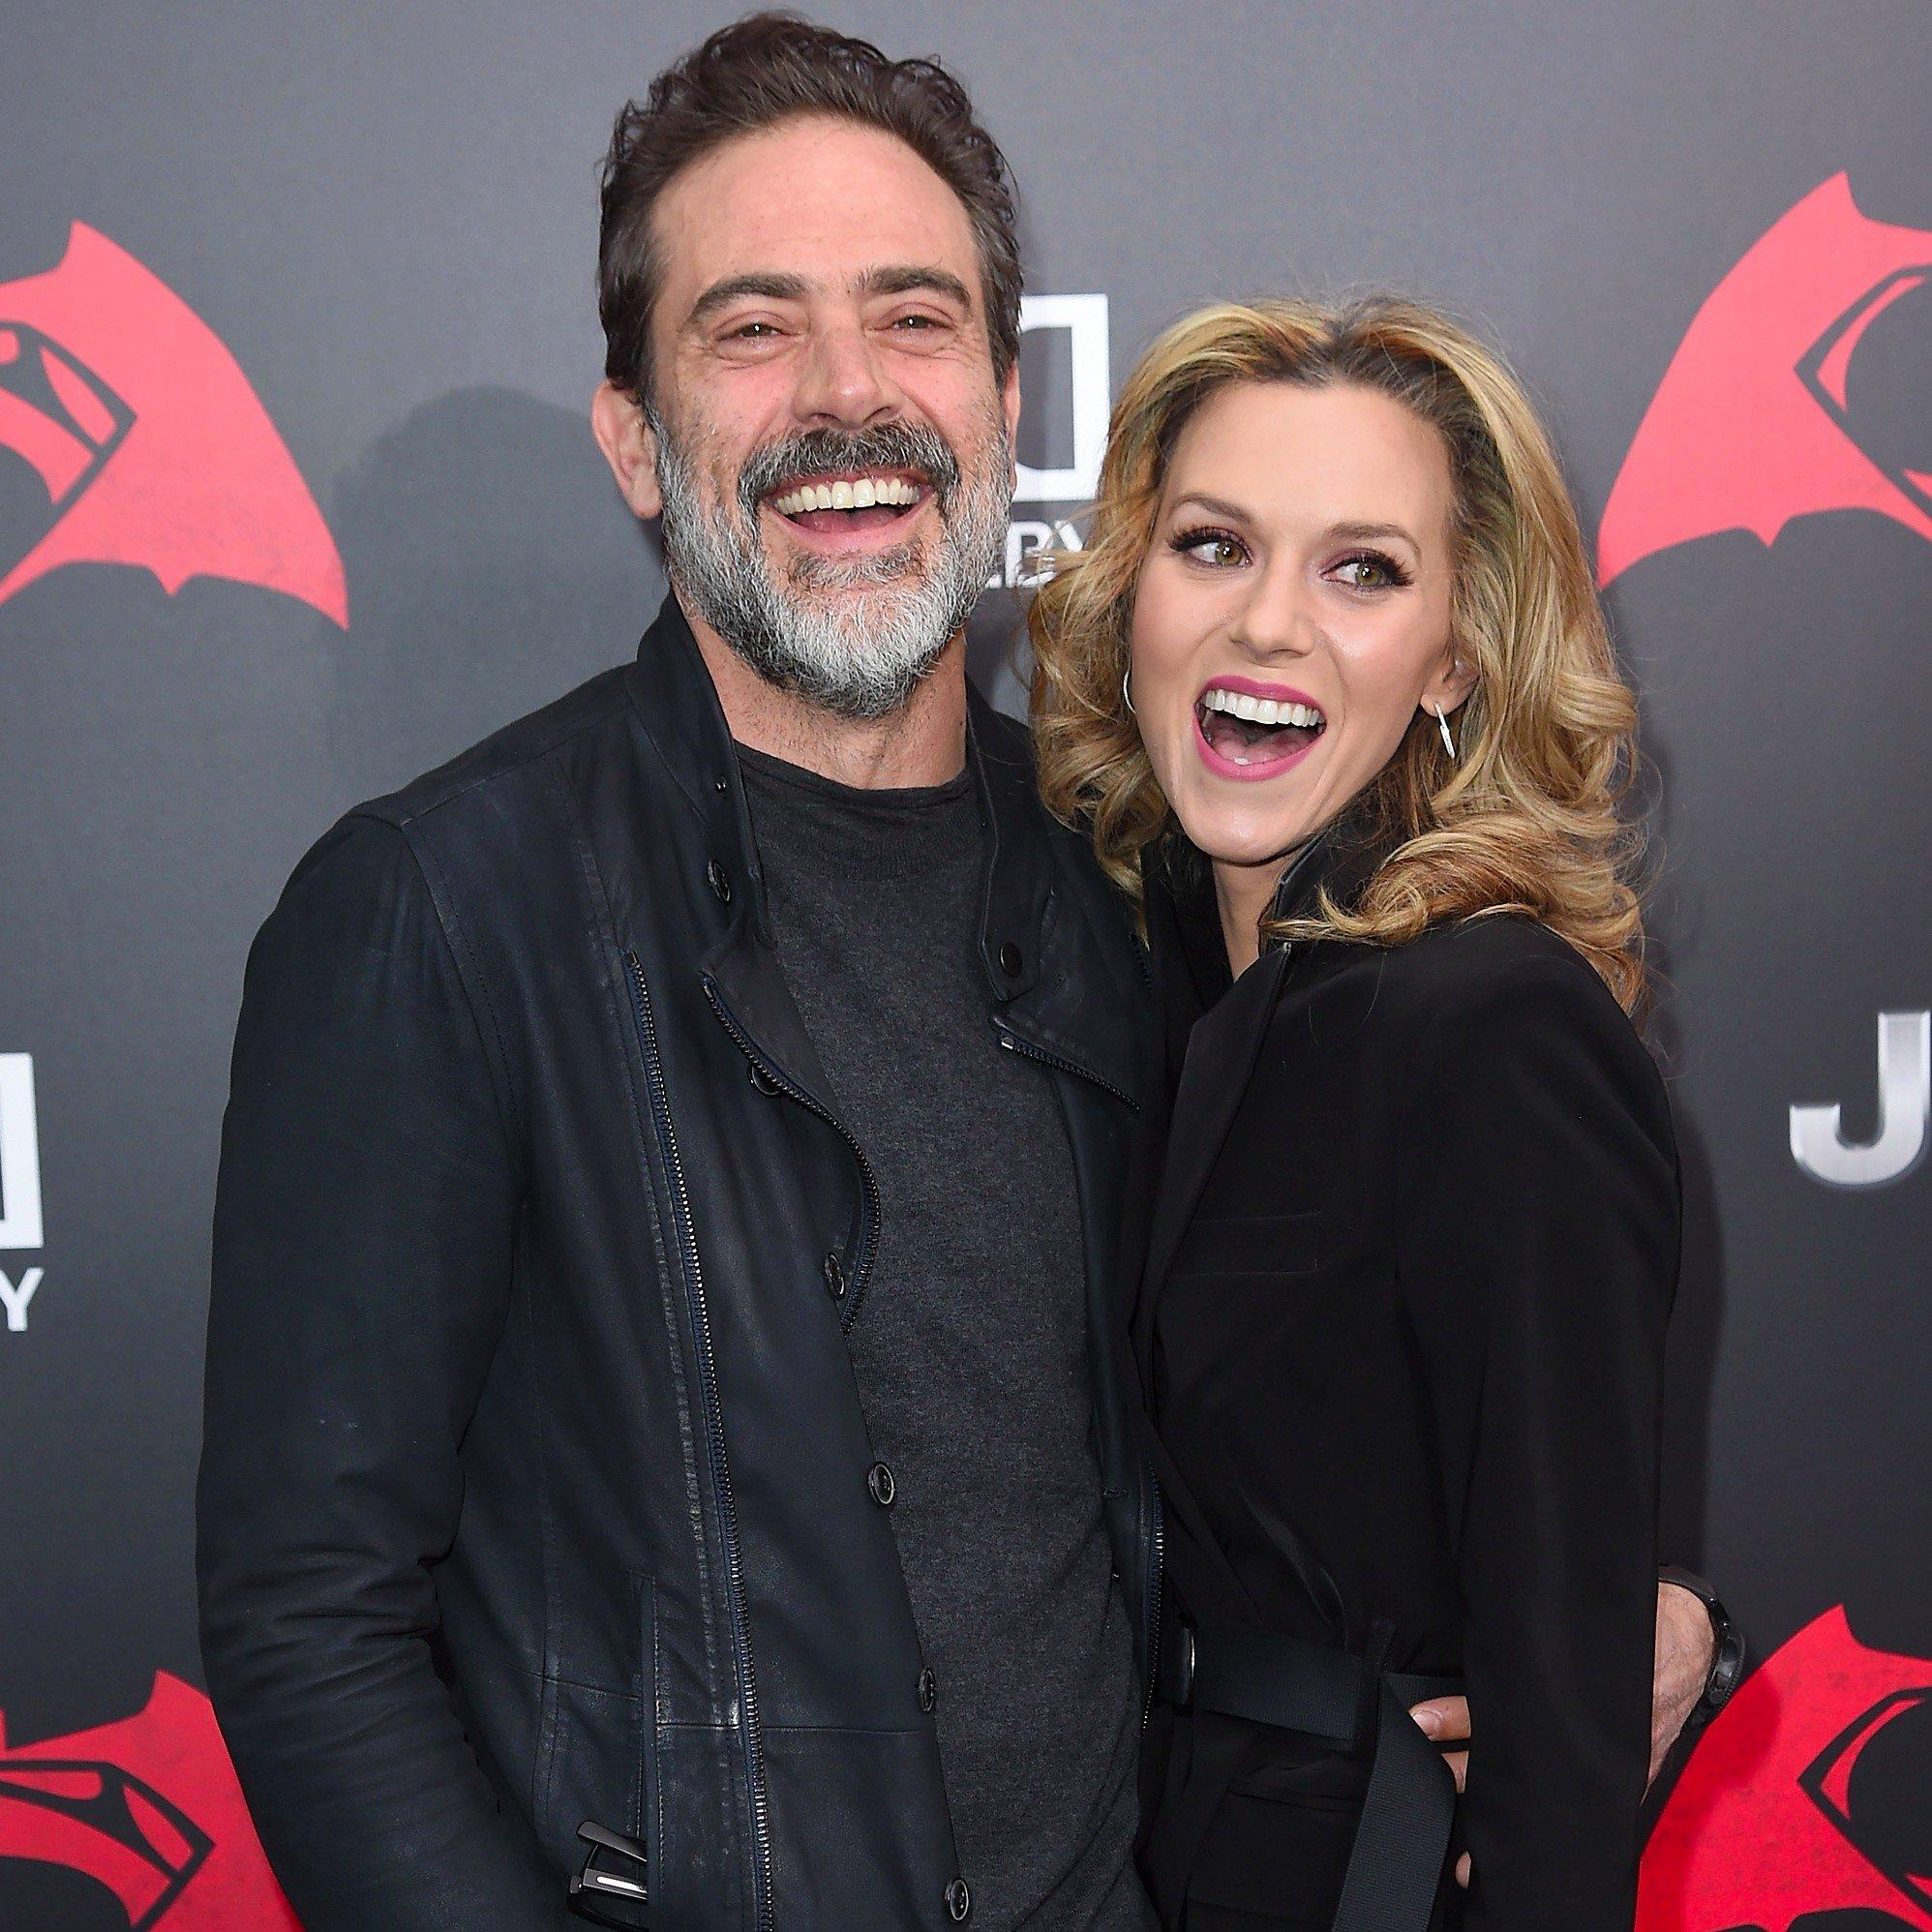 Who Is Responsible For Jeffrey Dean Morgan And Hilarie